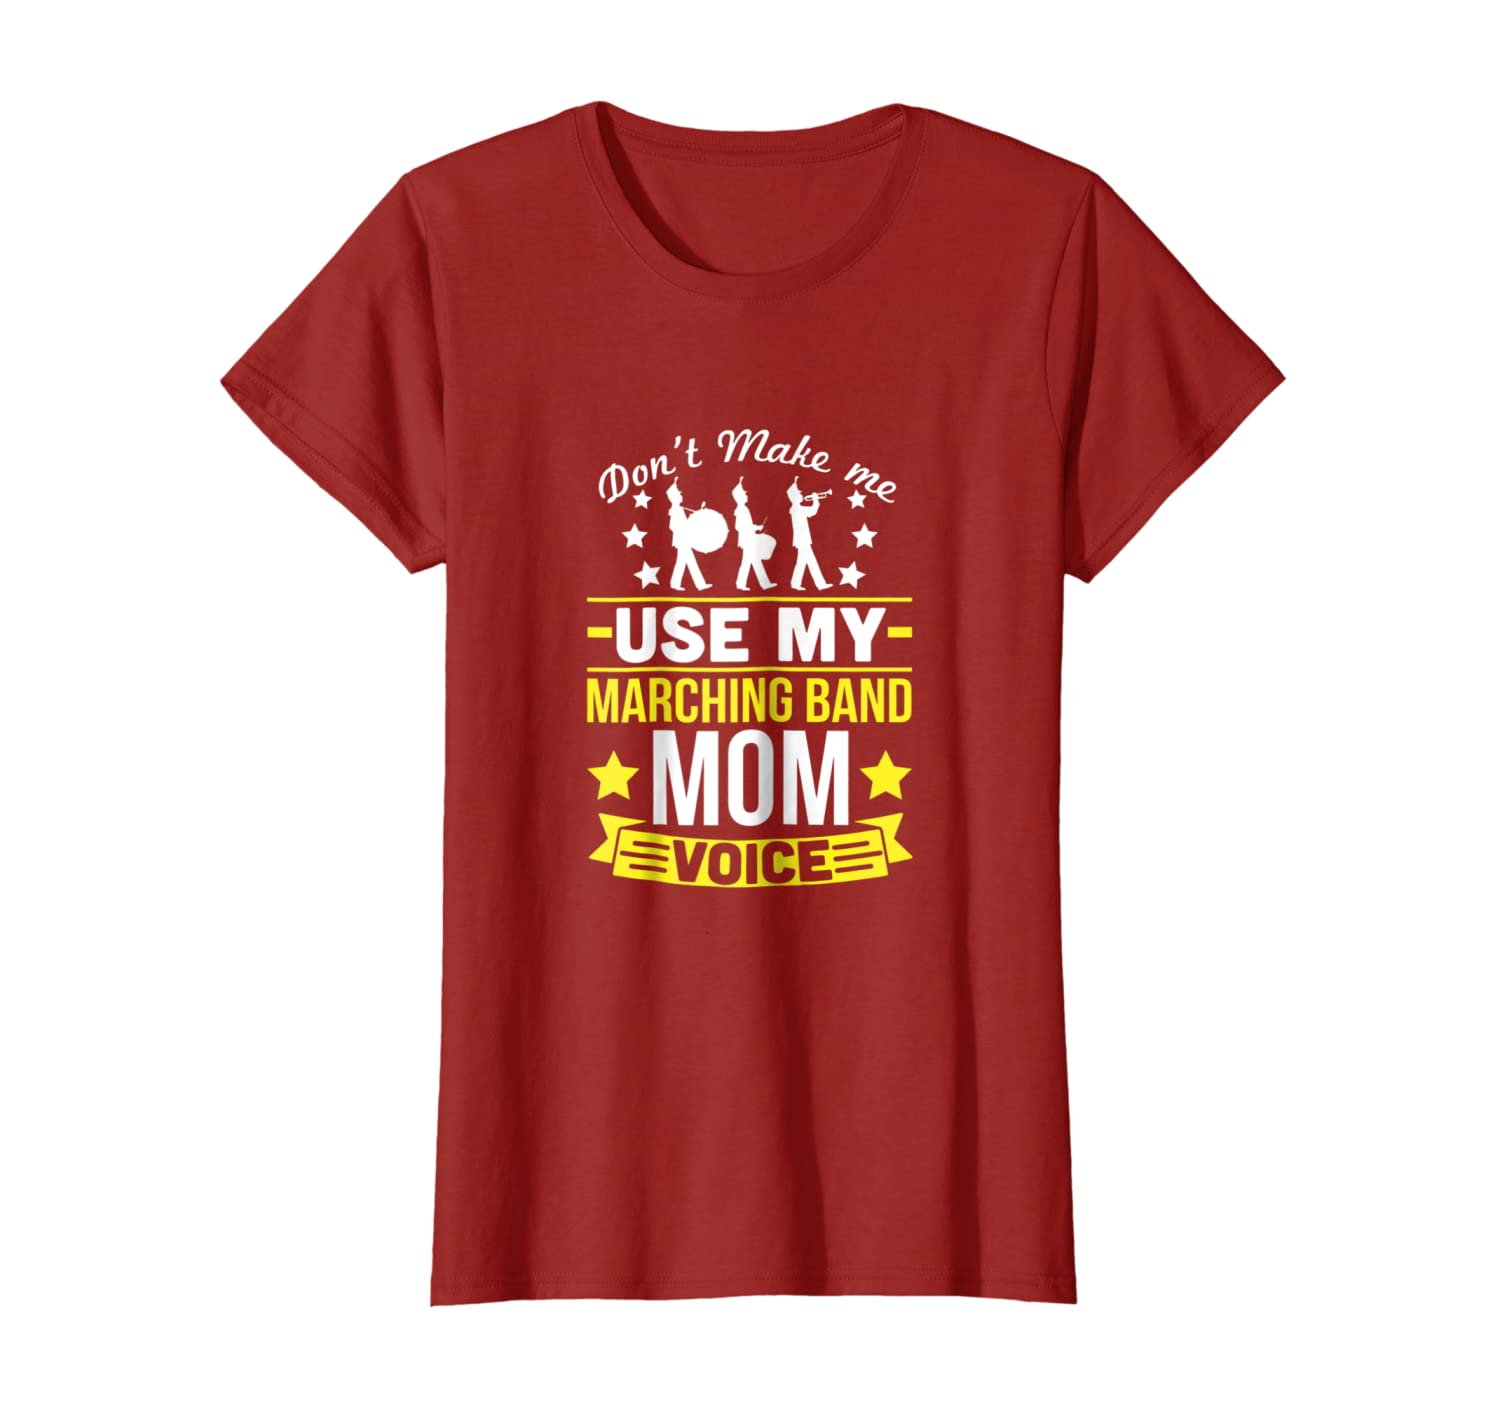 Amazon com: Don't Make Me Use Marching Band Mom Voice T